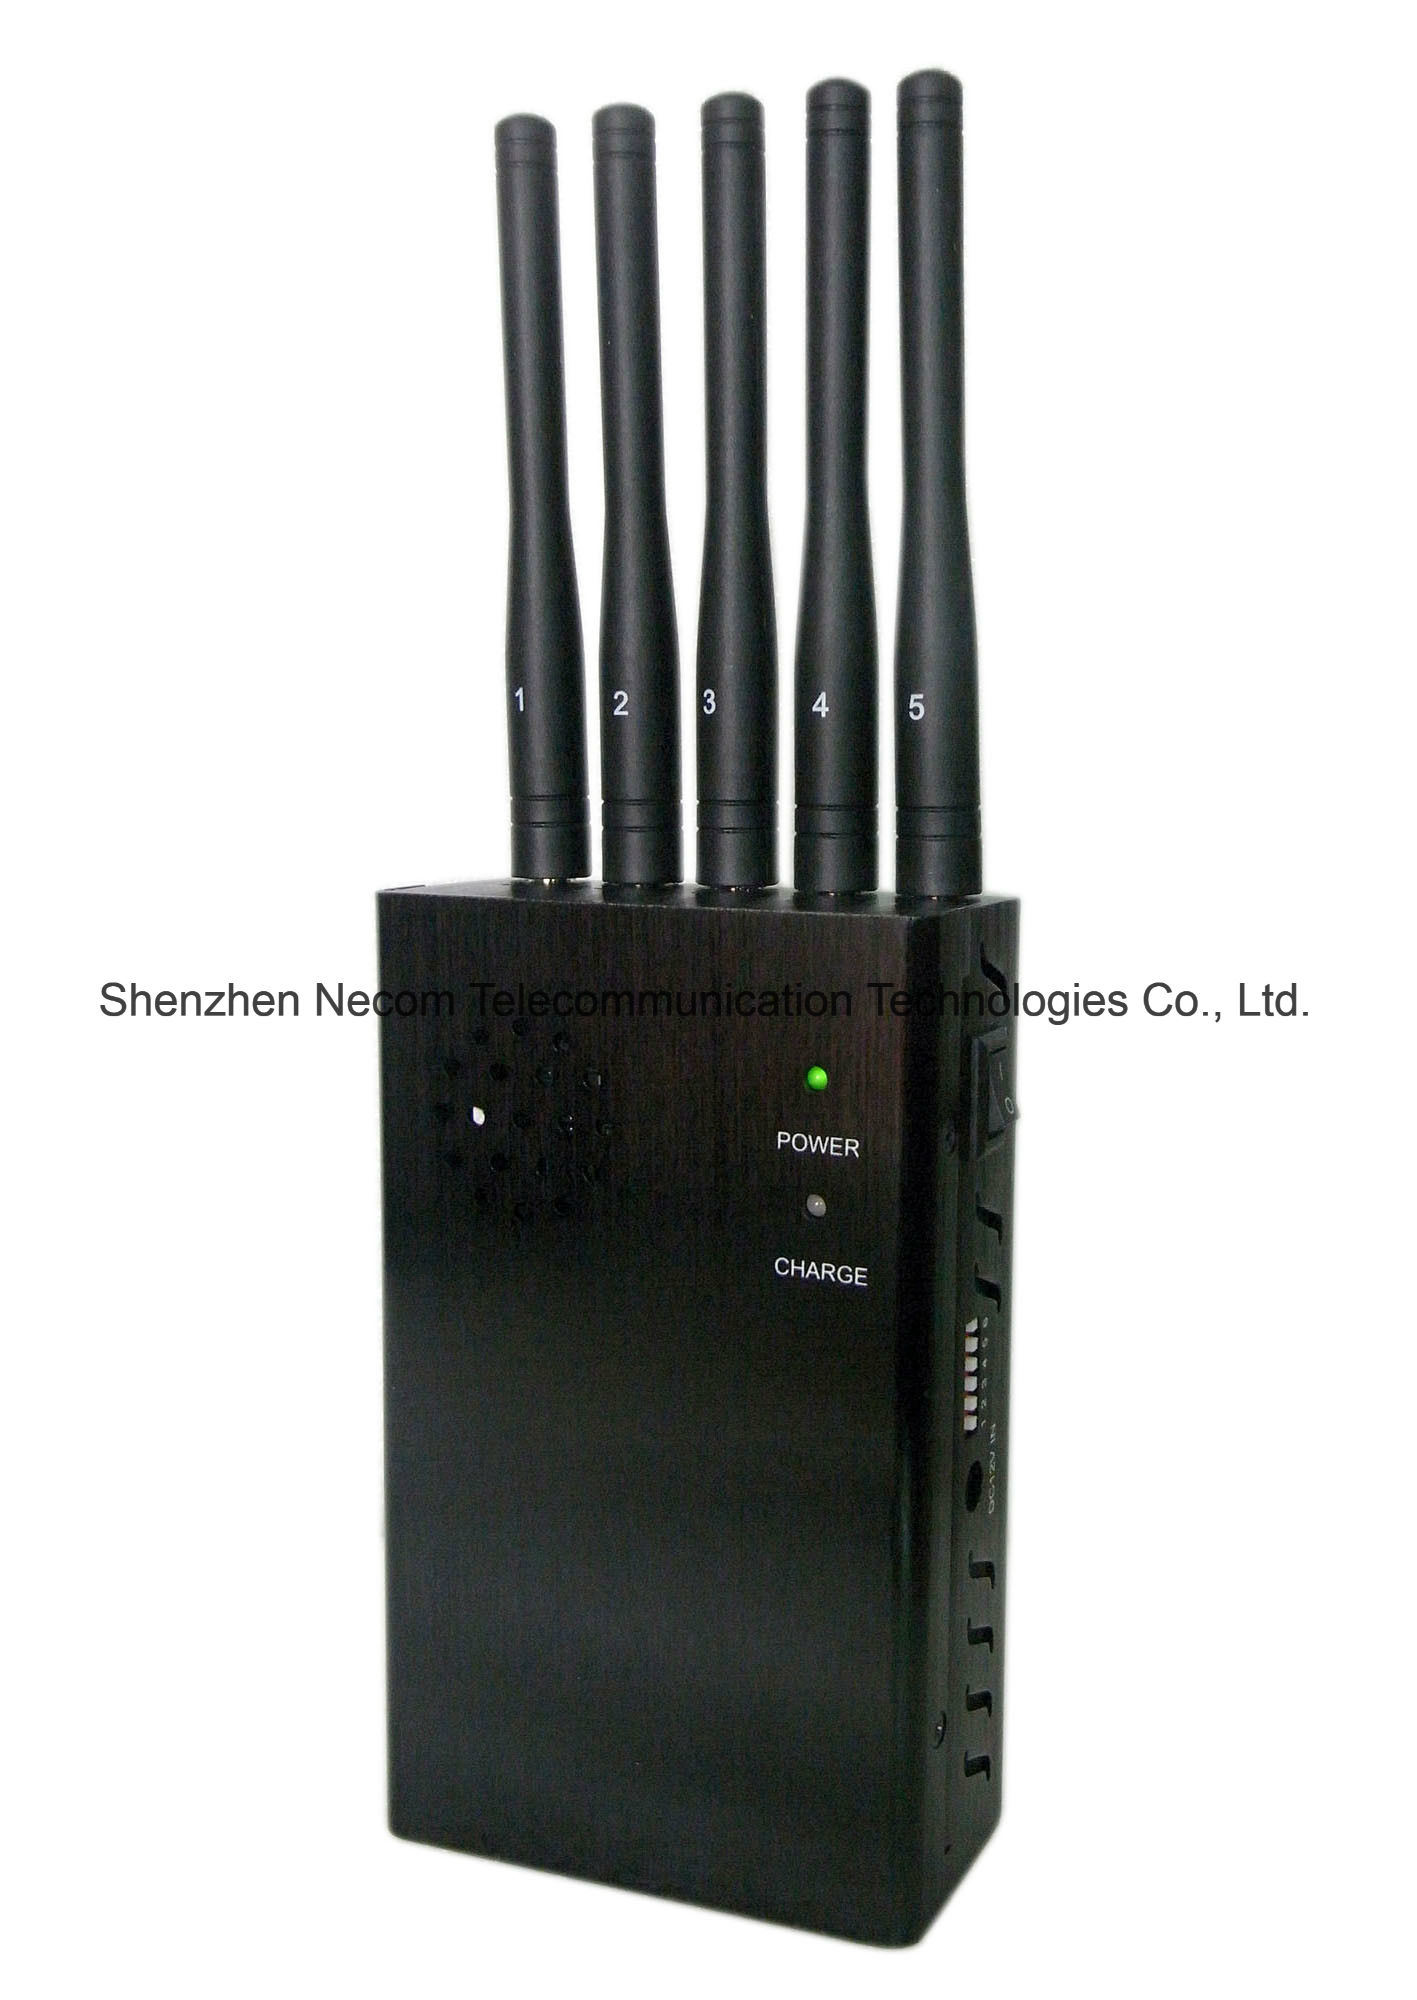 homemade mobile jammer tours - China 5 Antenna Big Portable Cell Jammer, Portable GPS Jammer, Portable WiFi Jammer, Jamming 2g+3G+4G+Gpsl1 - China 5 Band Signal Blockers, Five Antennas Jammers